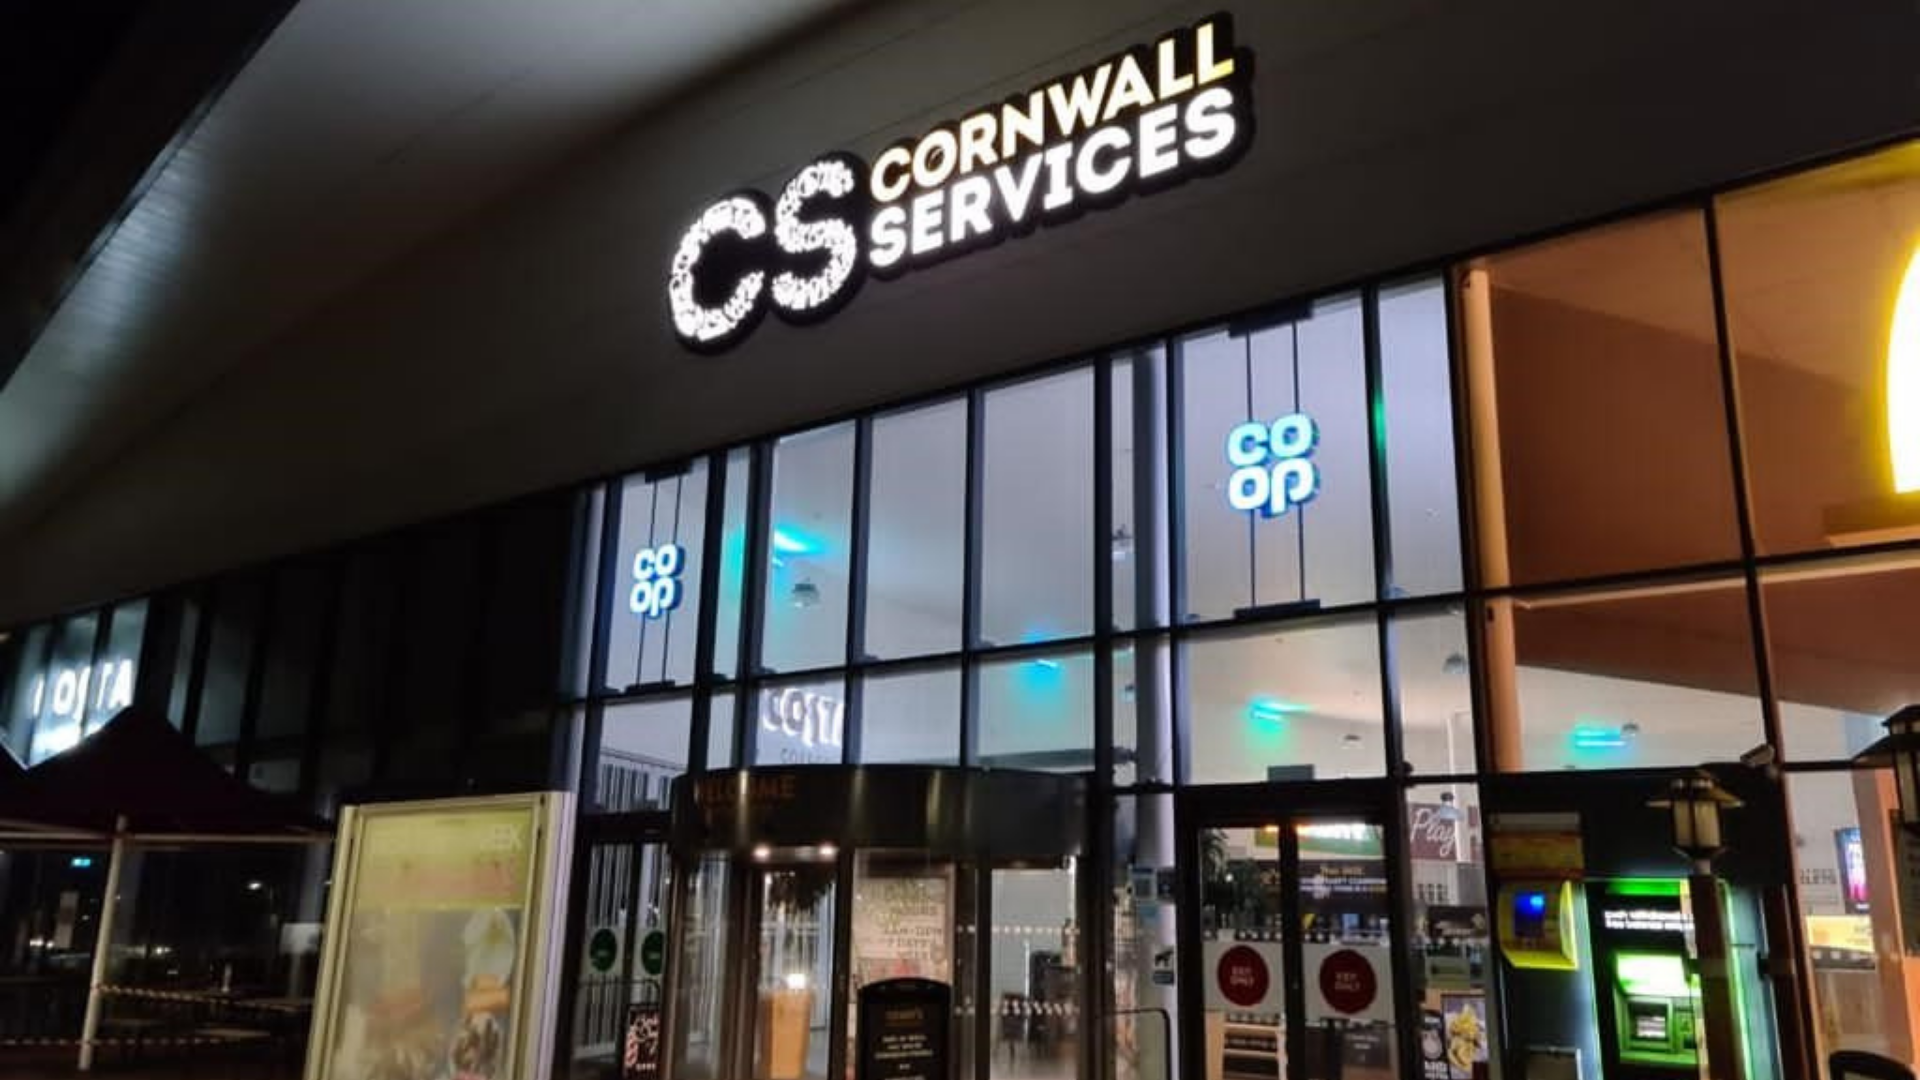 Co-op franchise expands with first service station located in the heart of Cornwall